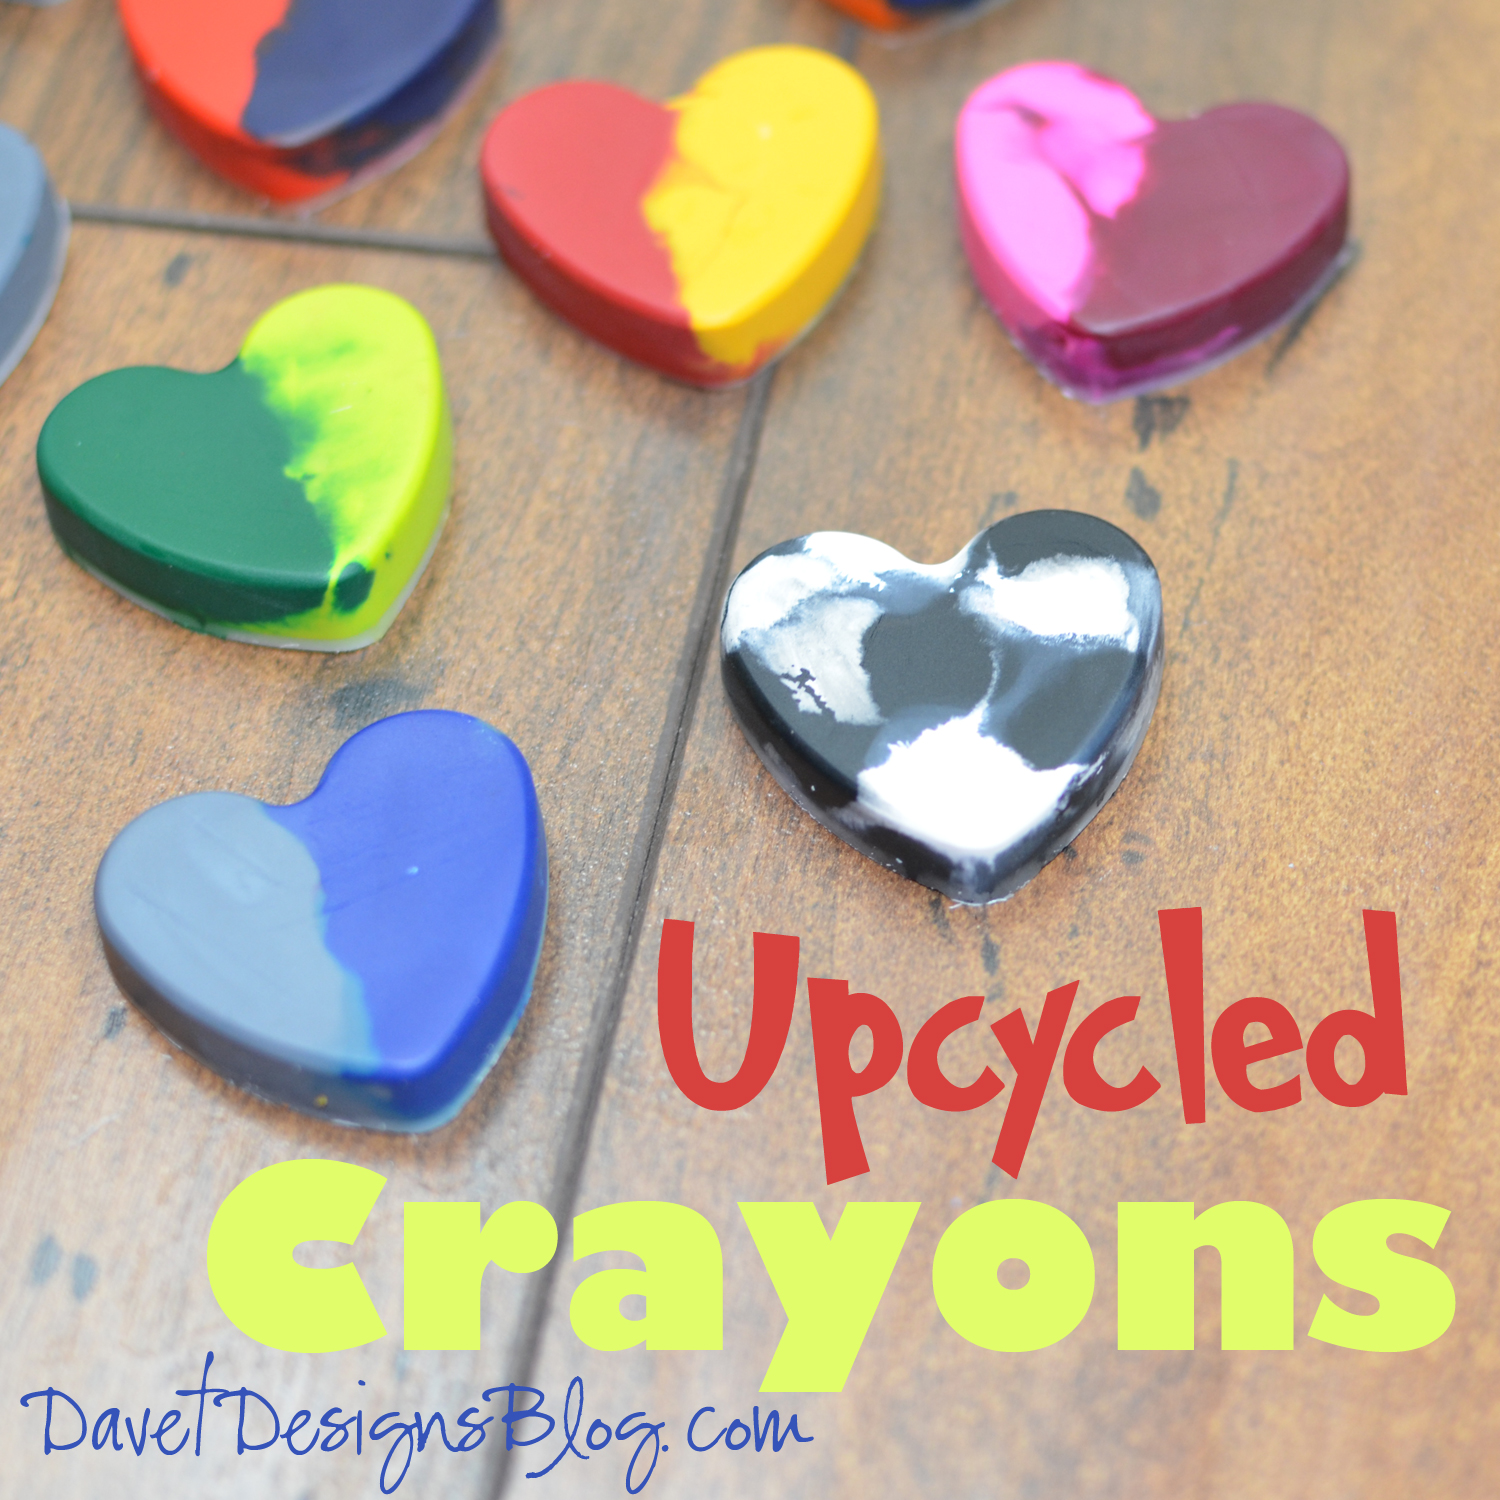 craft ideas and more from davet designs upcycled crayons diy tutorial. Black Bedroom Furniture Sets. Home Design Ideas